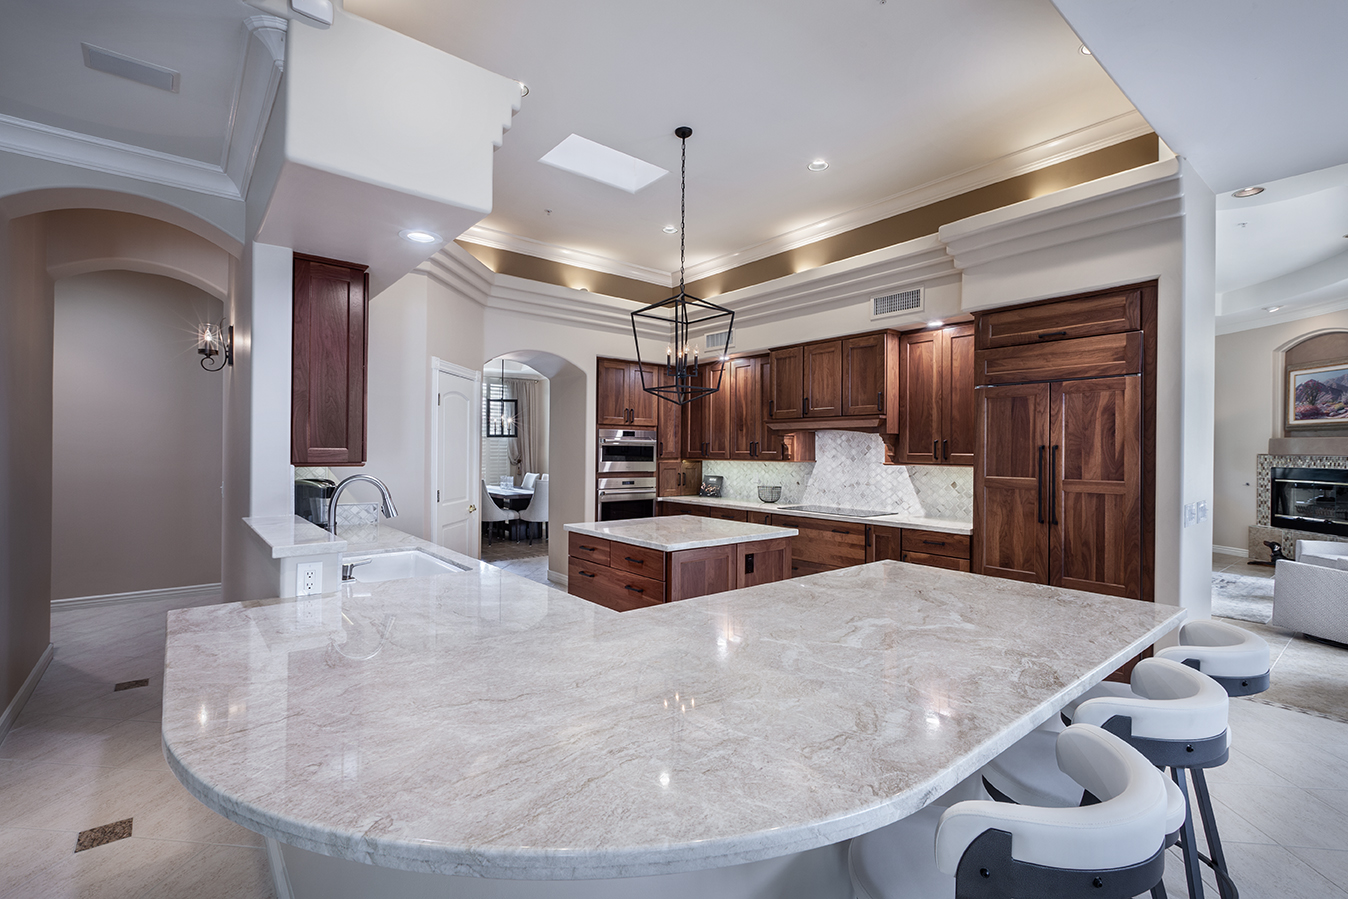 kitchen with counter edge